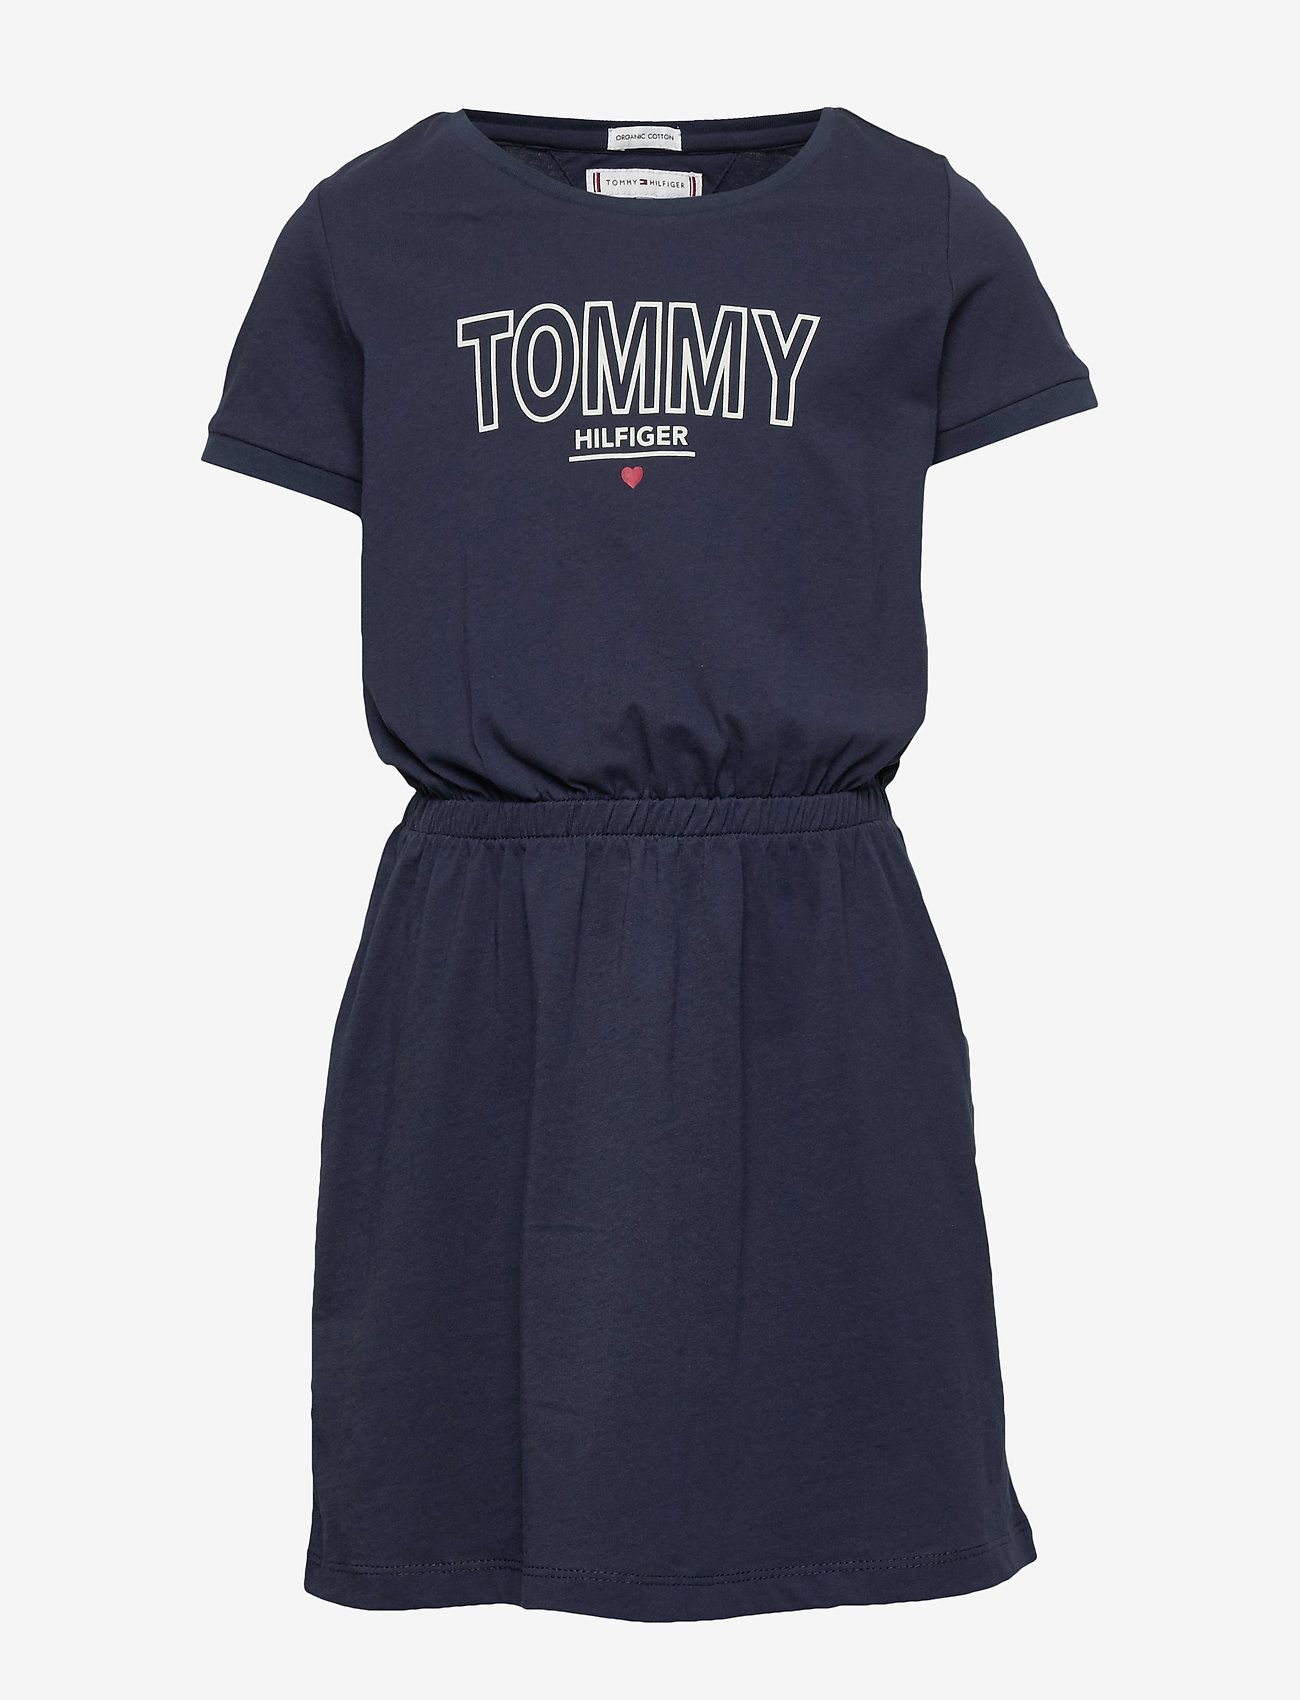 Tommy Hilfiger - JERSEY TEE DRESS S/S - robes - twilight navy - 0